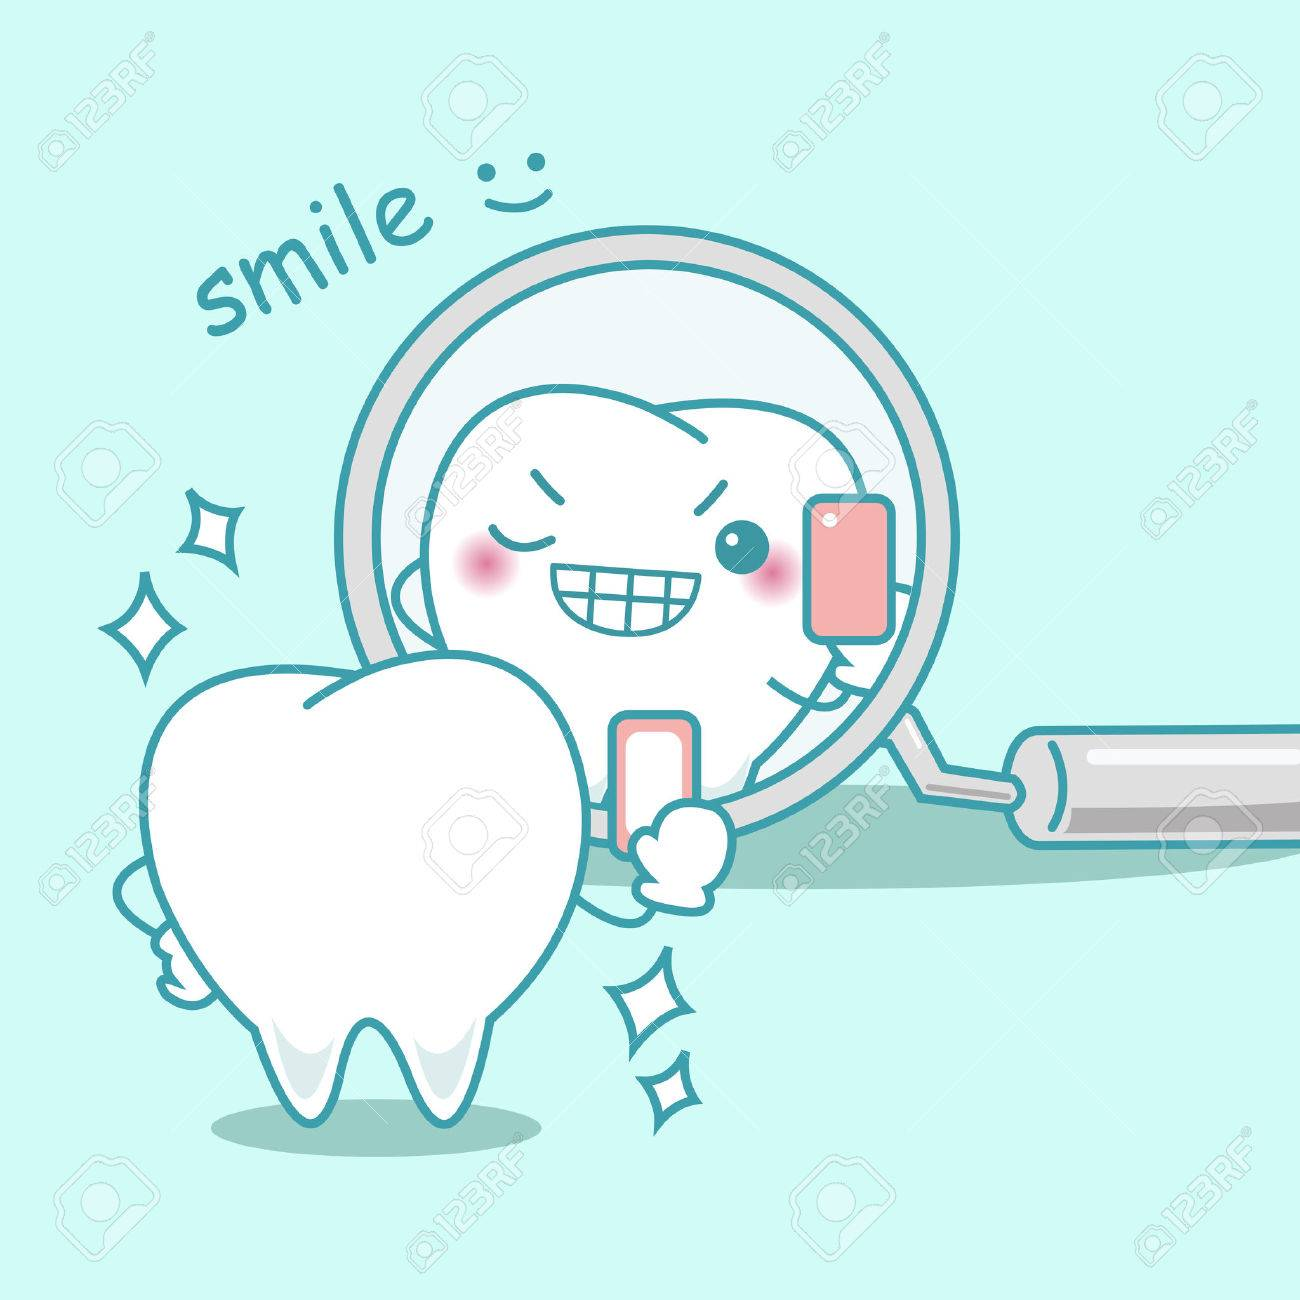 Cute Cartoon Teeth Smile To You In The Mirror Royalty Free Cliparts Vectors And Stock Illustration Image 70274318